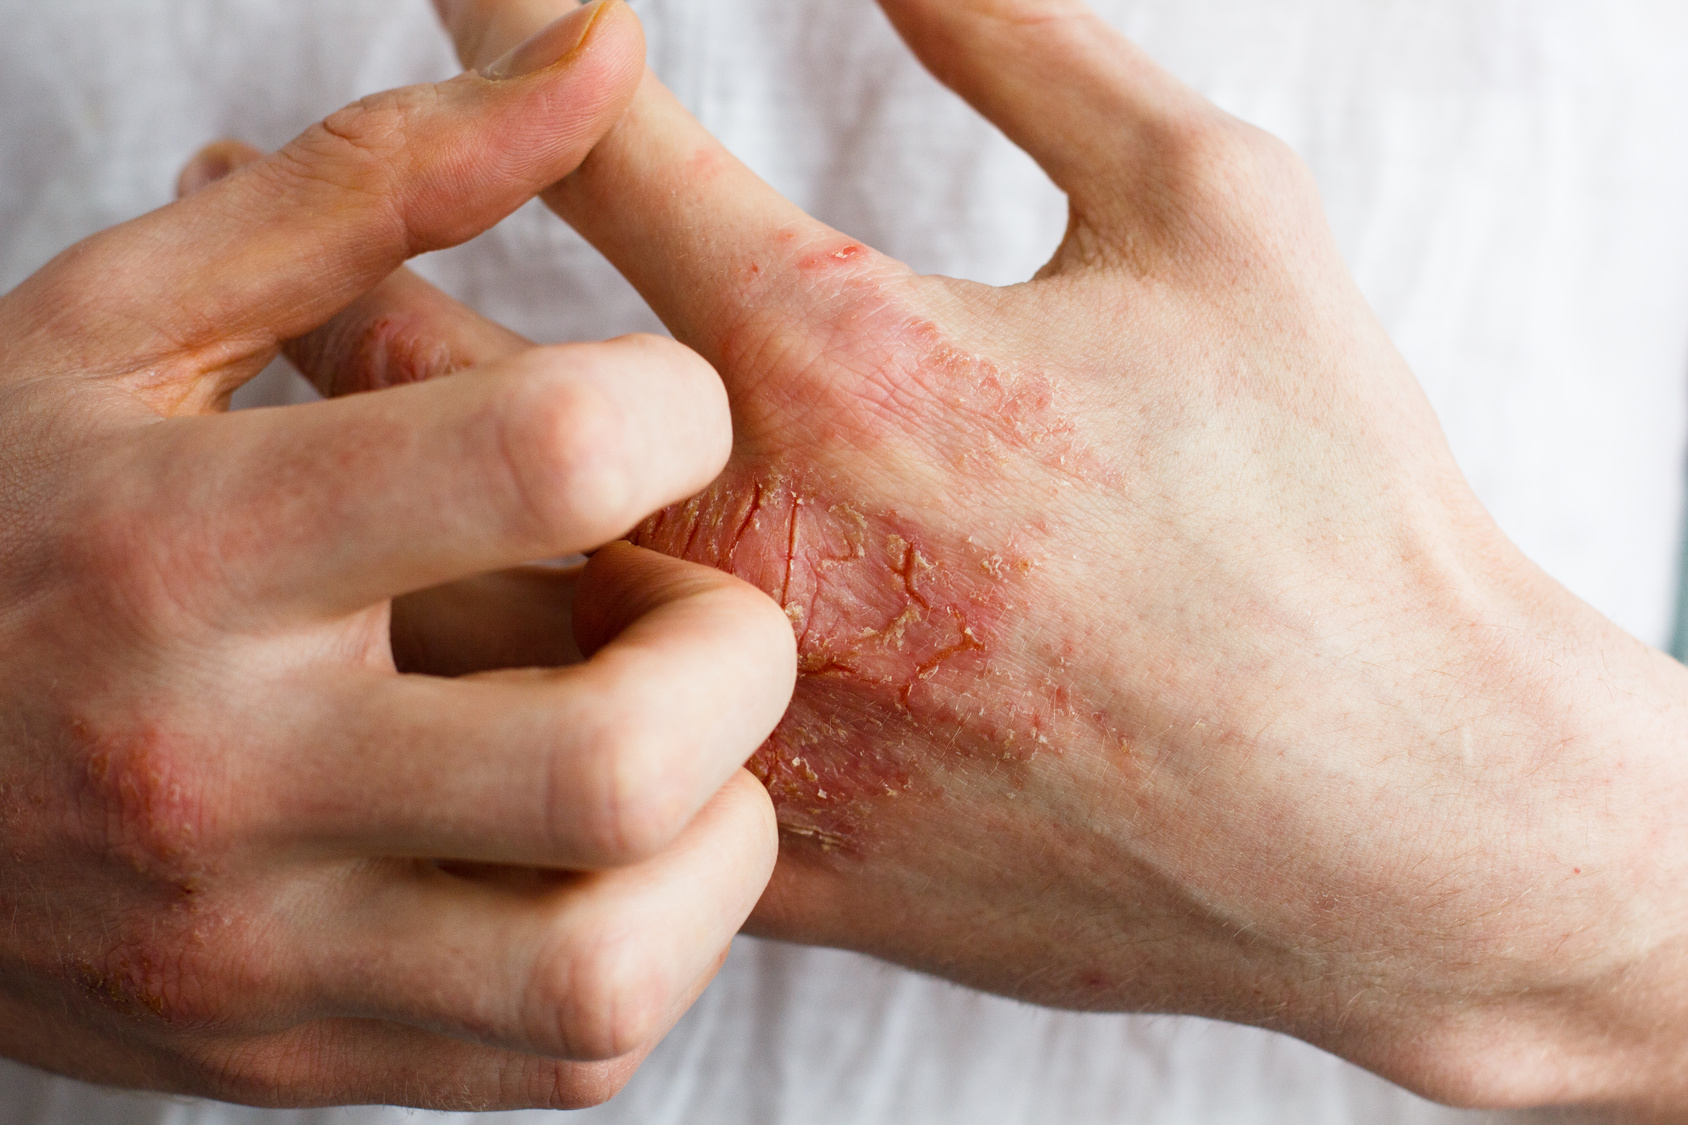 The problem with many people - eczema on hand.